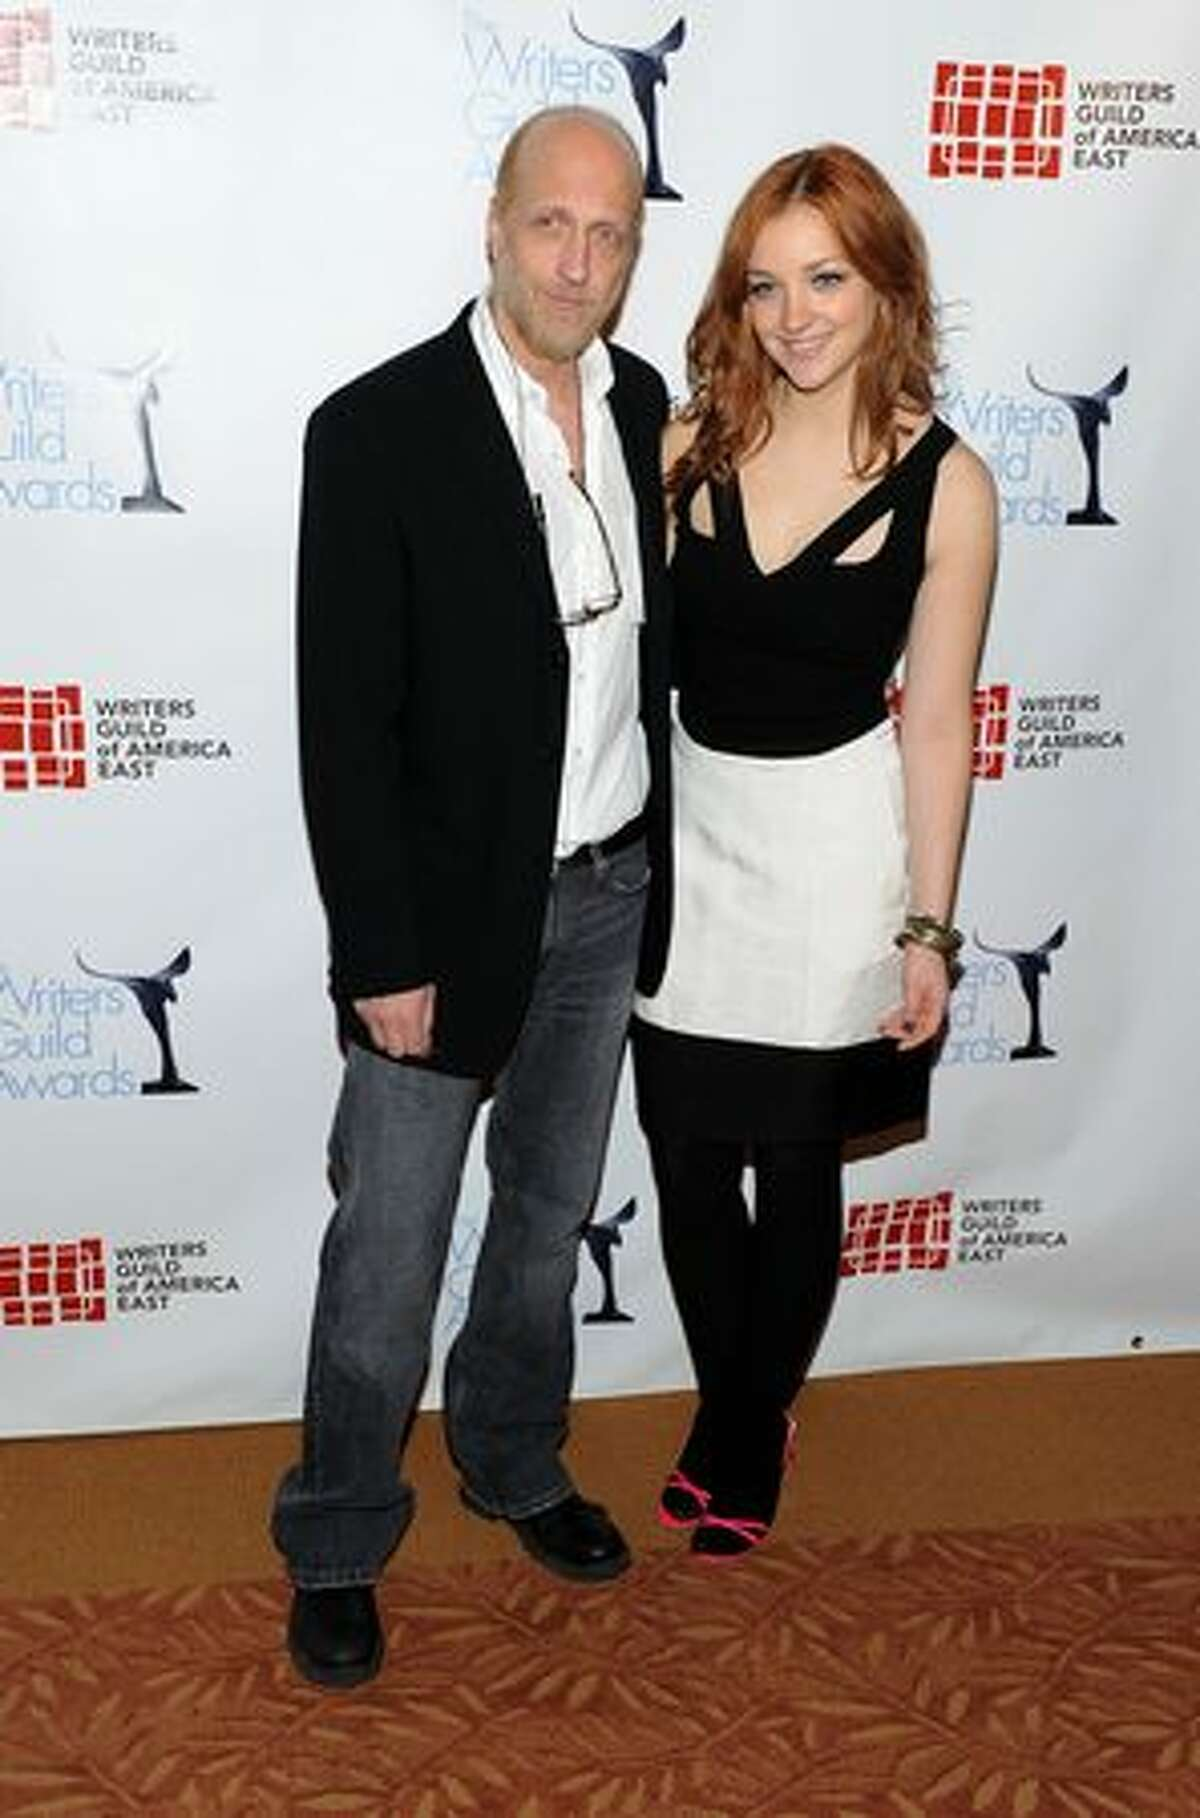 NEW YORK - FEBRUARY 20: Actor/Writer Chris Elliott and actress Abby Elliot attend the 62nd Annual Writers Guild Awards at Hudson Theatre on February 20, 2010 in New York City.